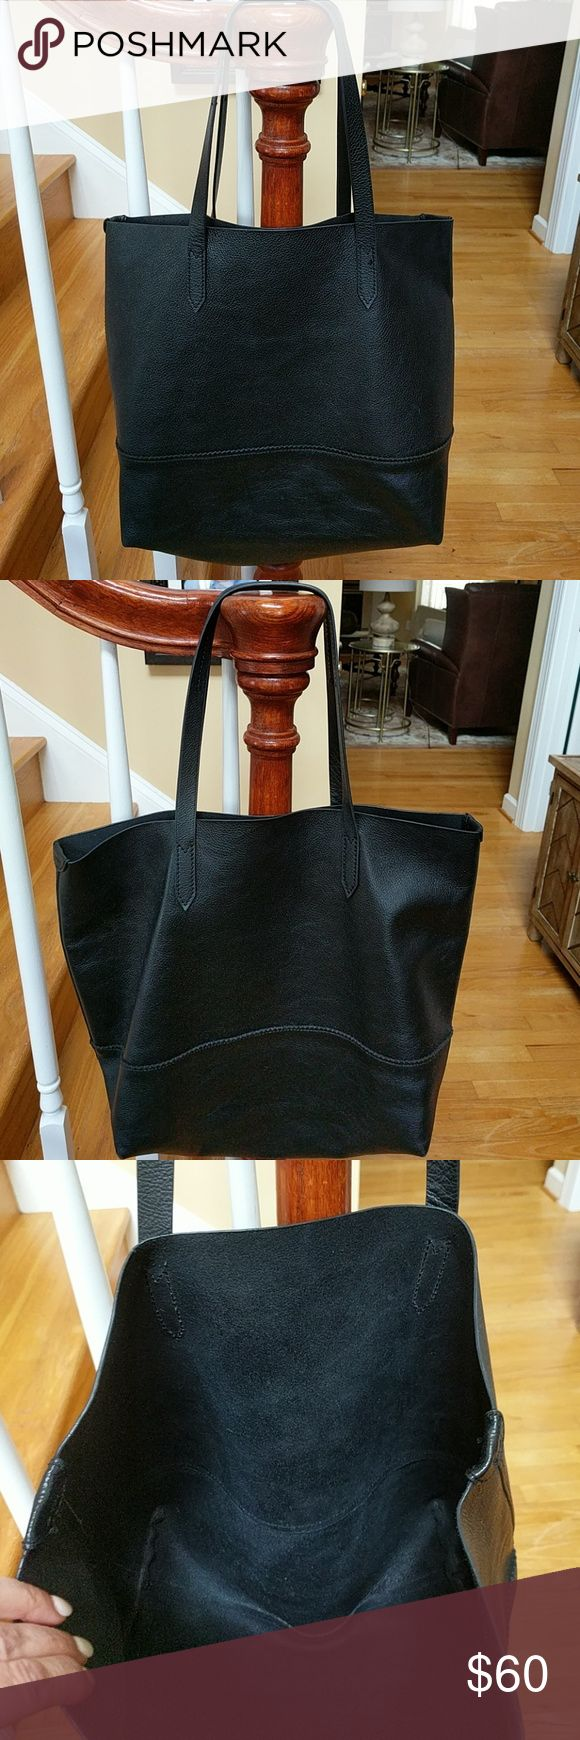 J Crew Downing Tote Nice and roomy J Crew Downing Tote in soft black leather. No hardware so you can wear gold or silver. Measures 17 x 12 x 3. There is some minor wear on bottom corners. In very good condition. J. Crew Bags Totes